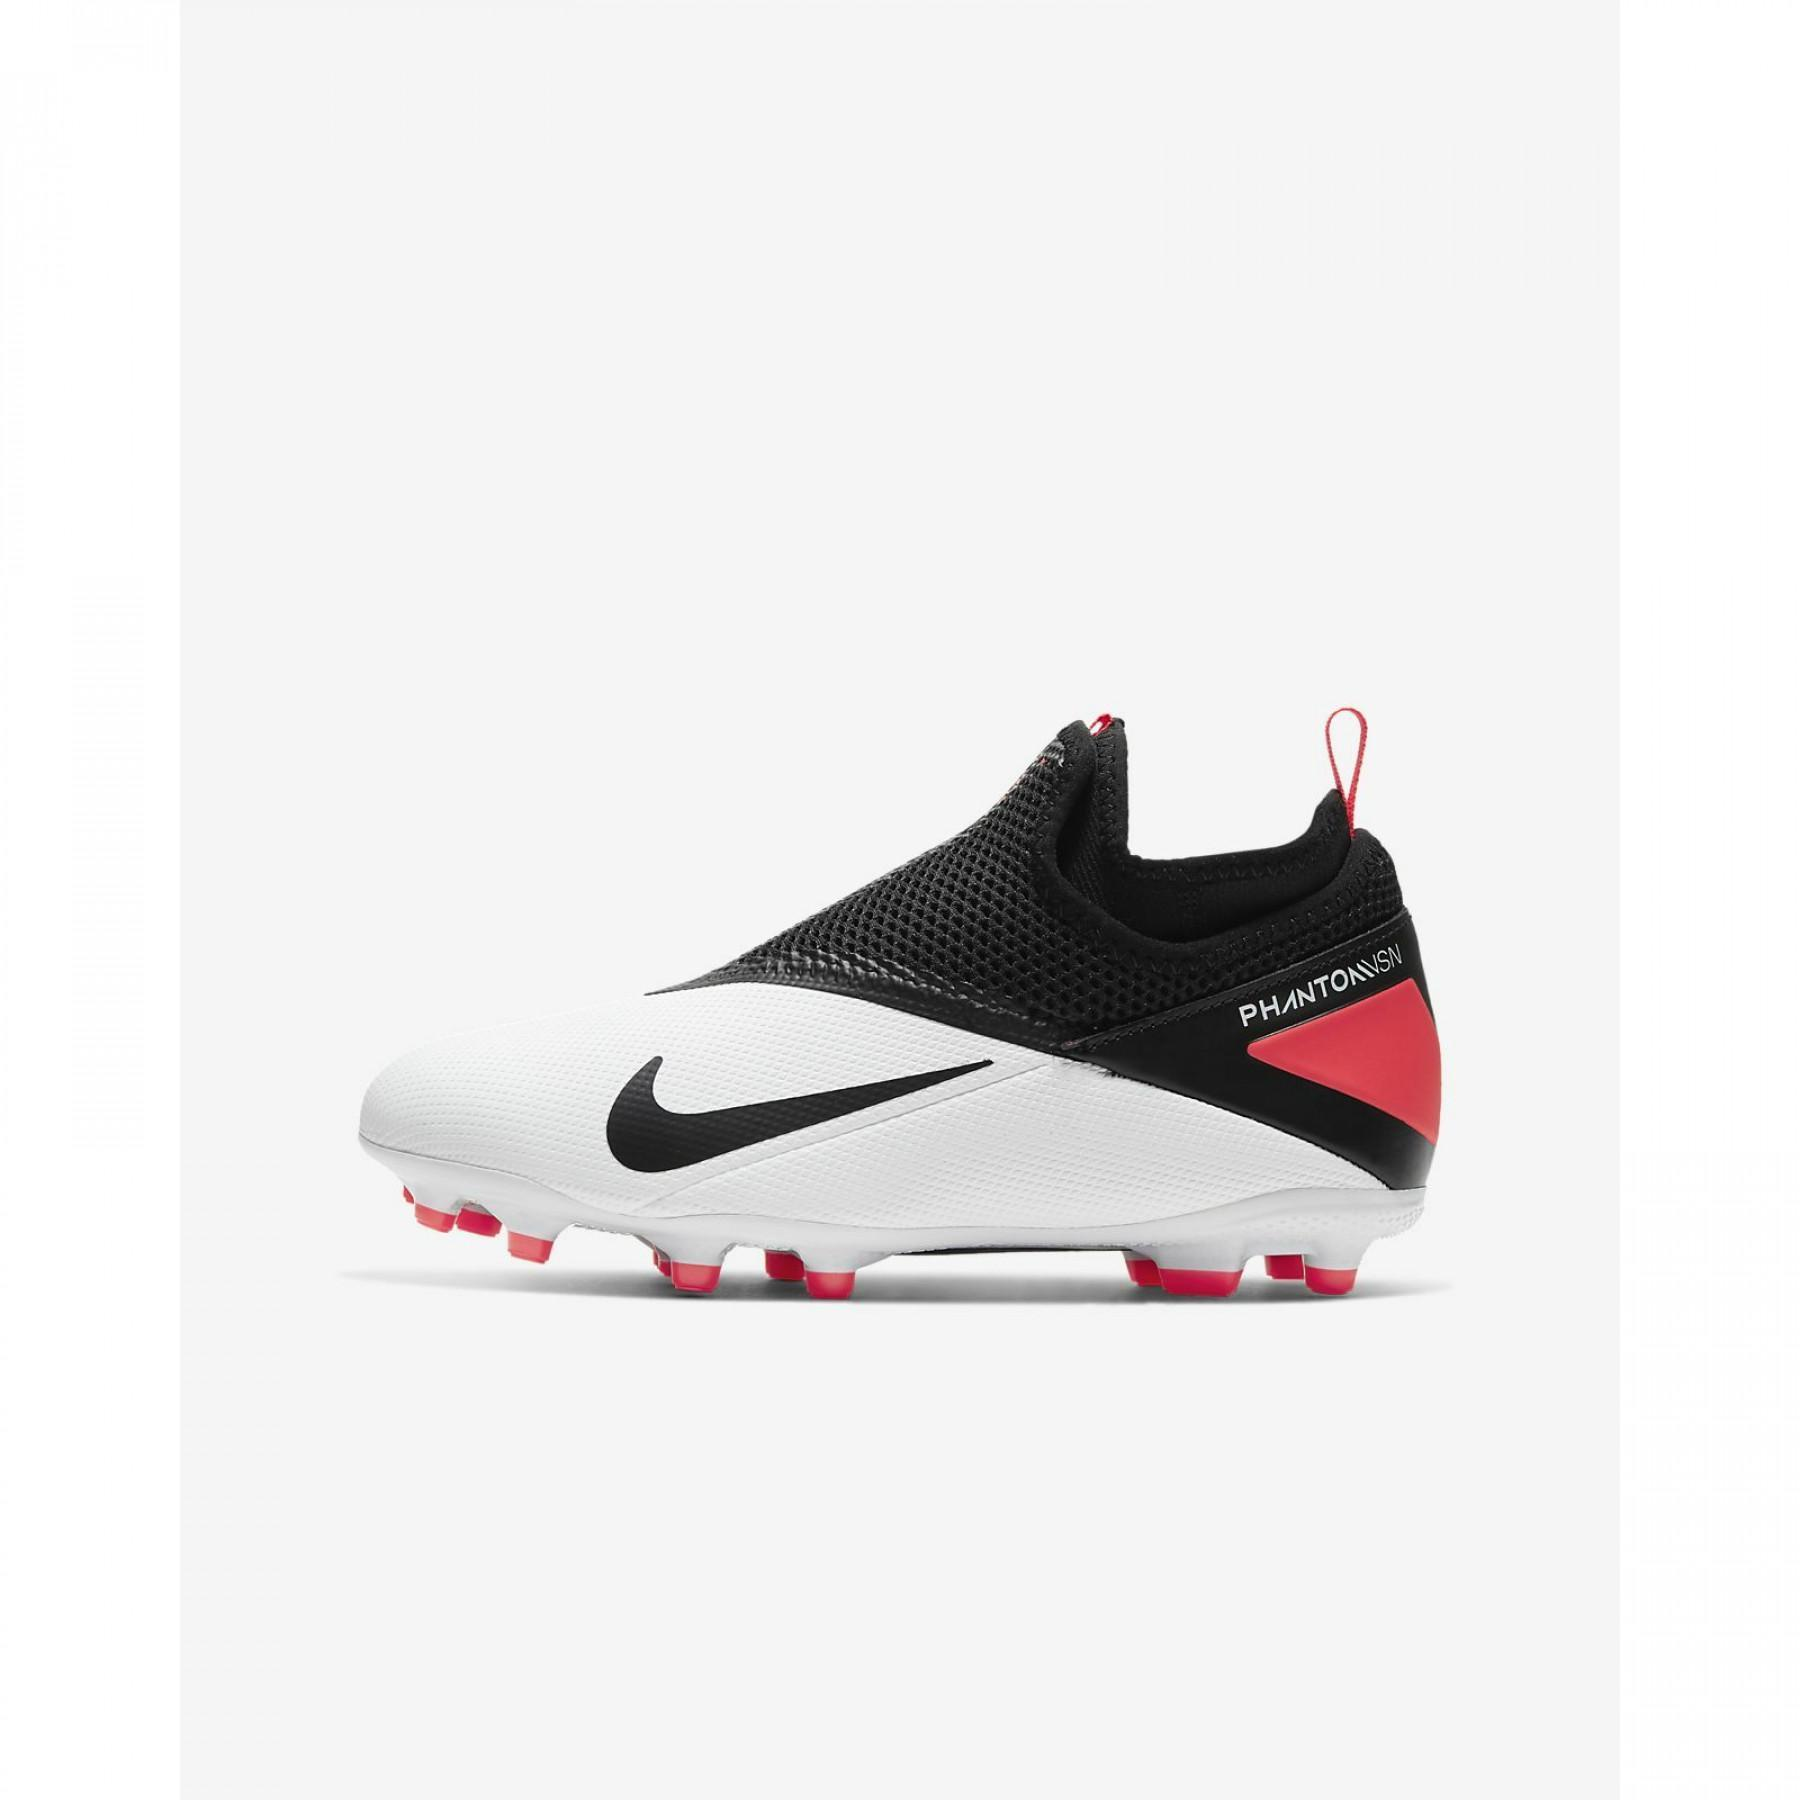 Chaussures kid Nike Phantom Vision 2 Academy DFit FG/MG